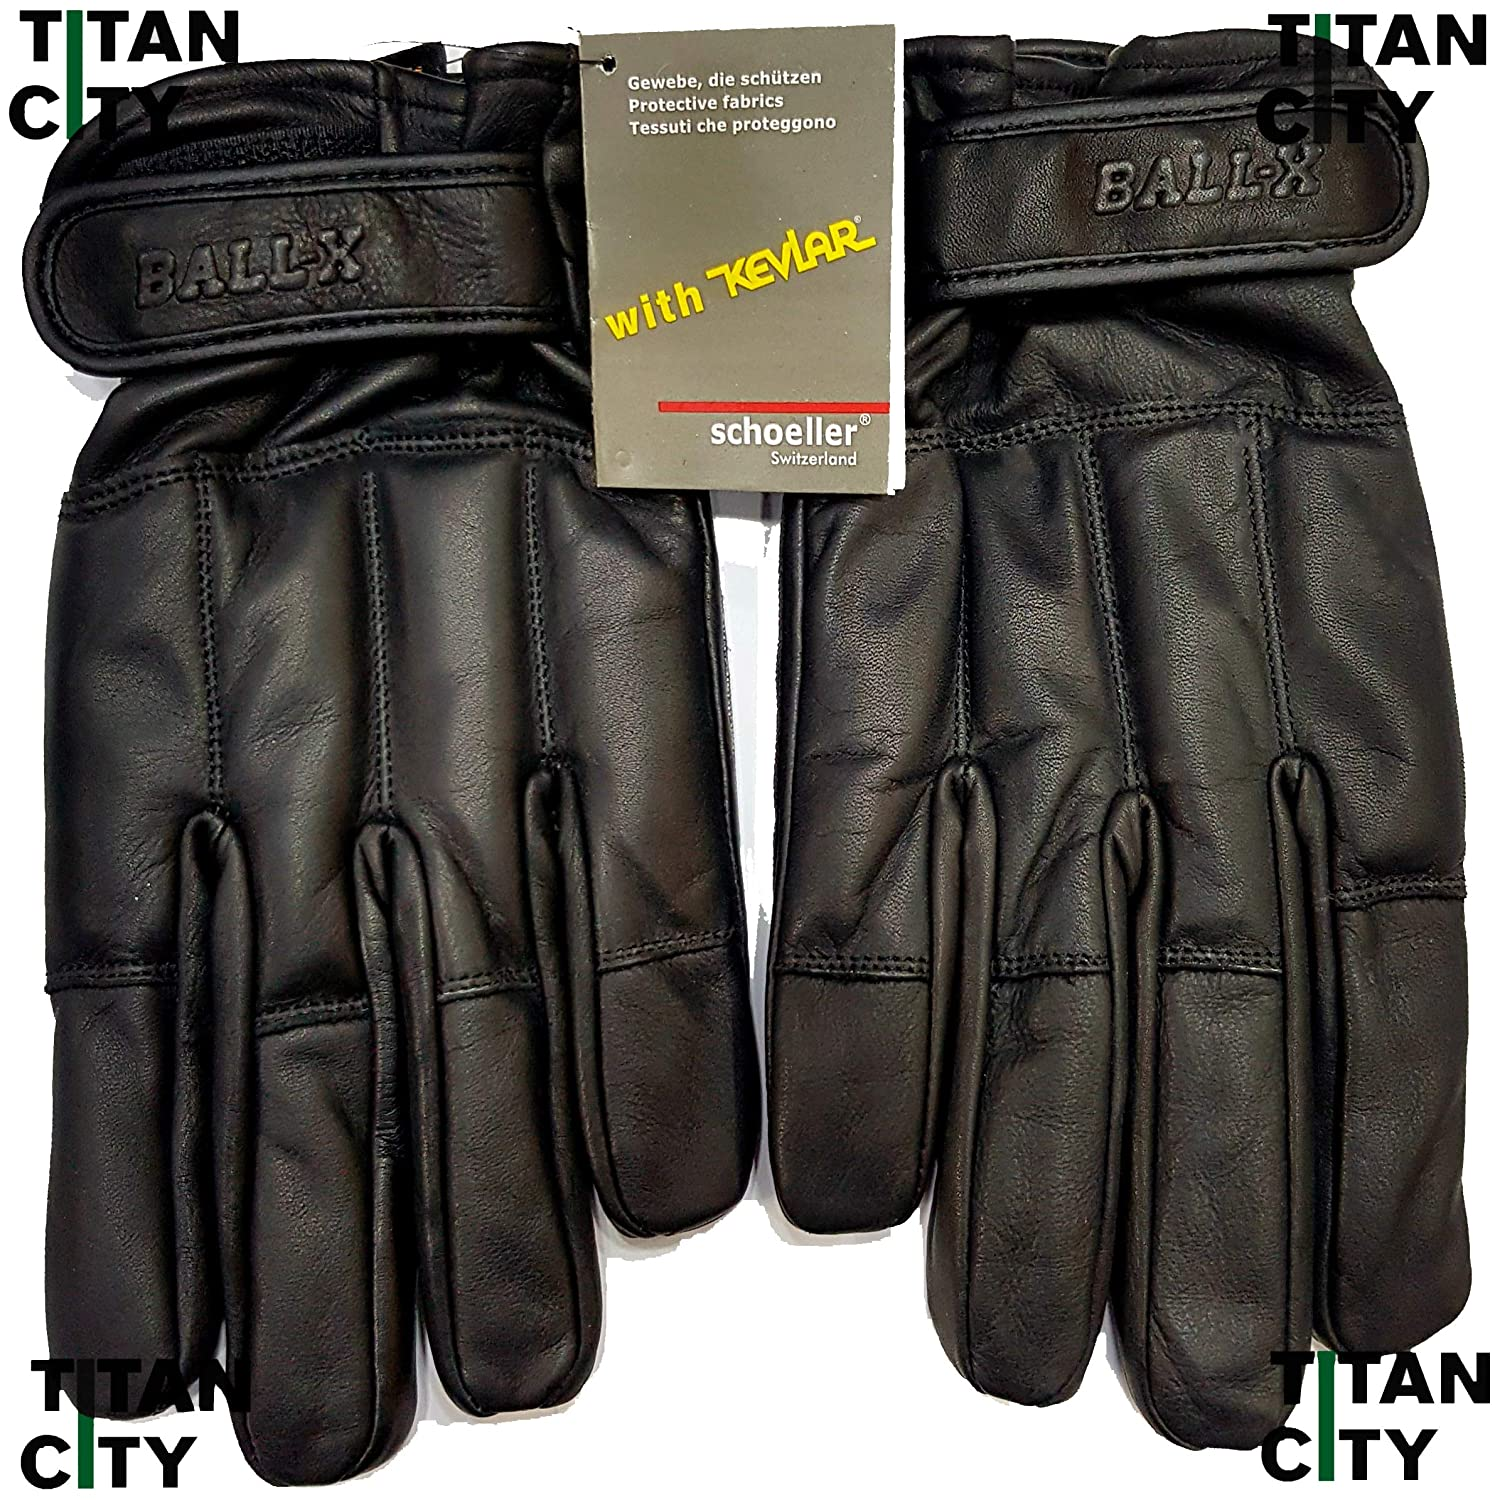 BALL-X MILTARY STYLE KNUCKLE DUSTERS GLOVES